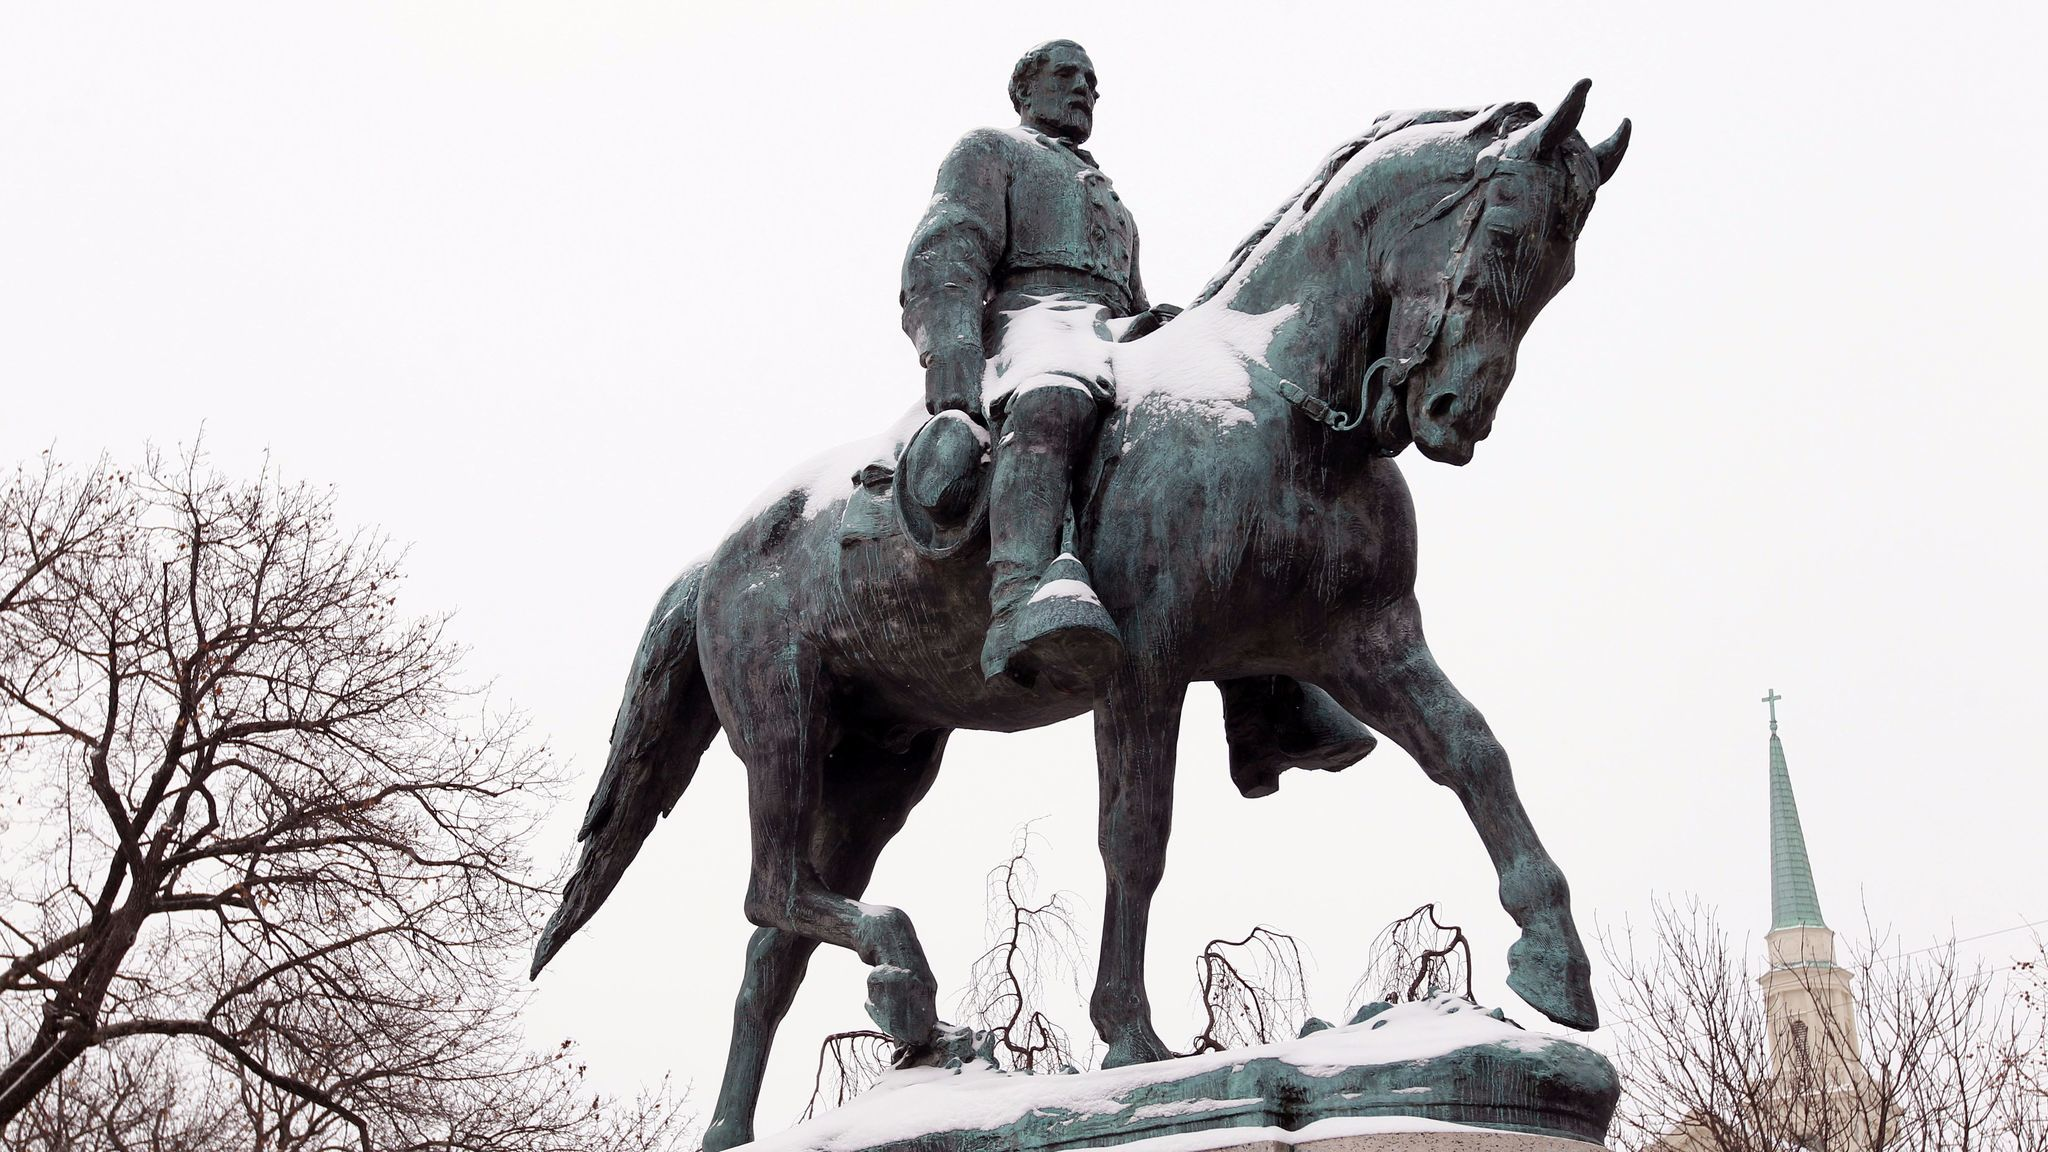 A statue of Robert E. Lee collects snow in Lee Park in Charlottesville, Va., on March 3, 2014.